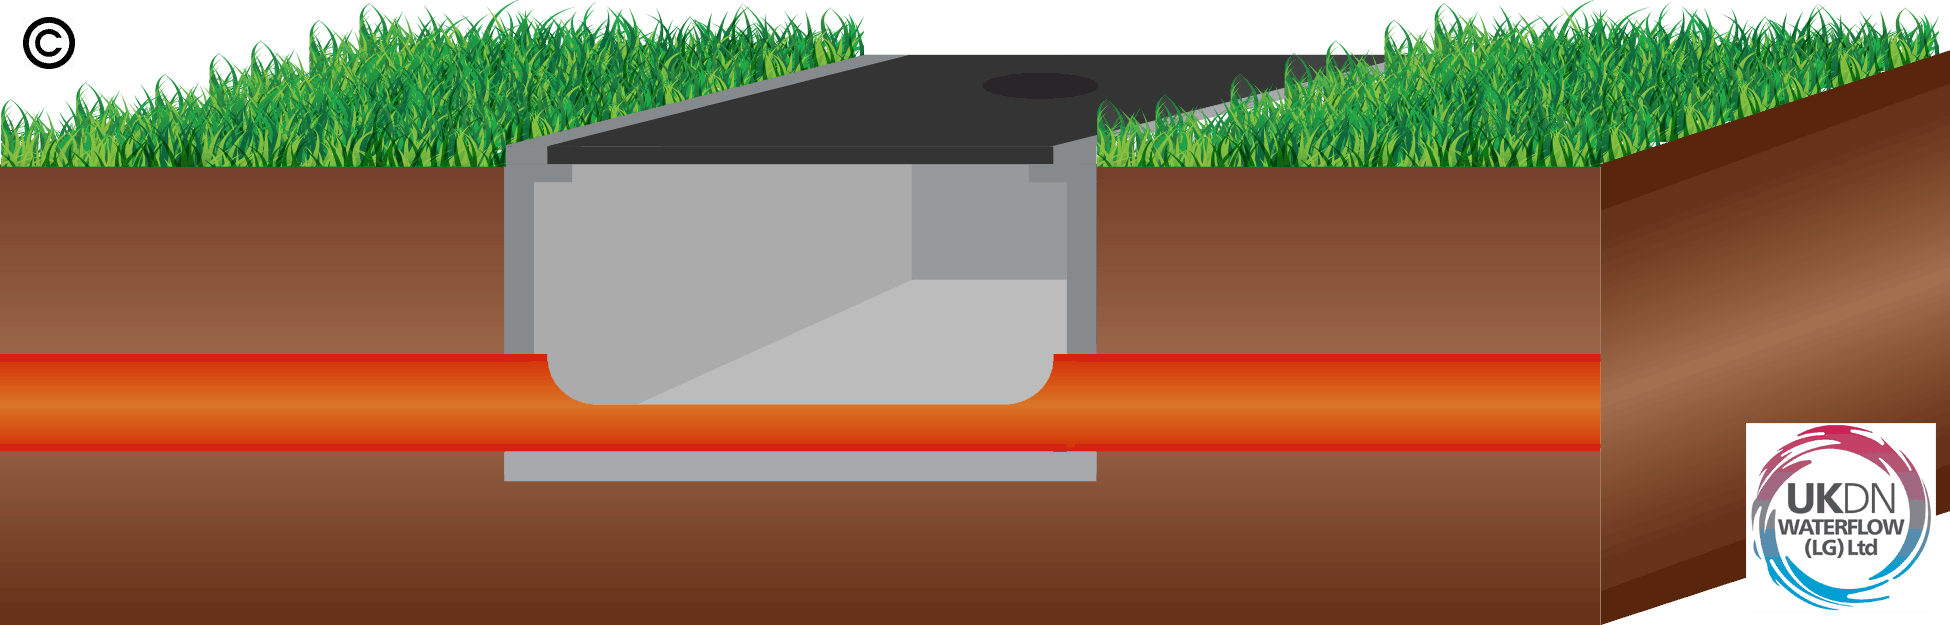 What is a Manhole/Inspection Chamber? – Advice – UKDN Waterflow